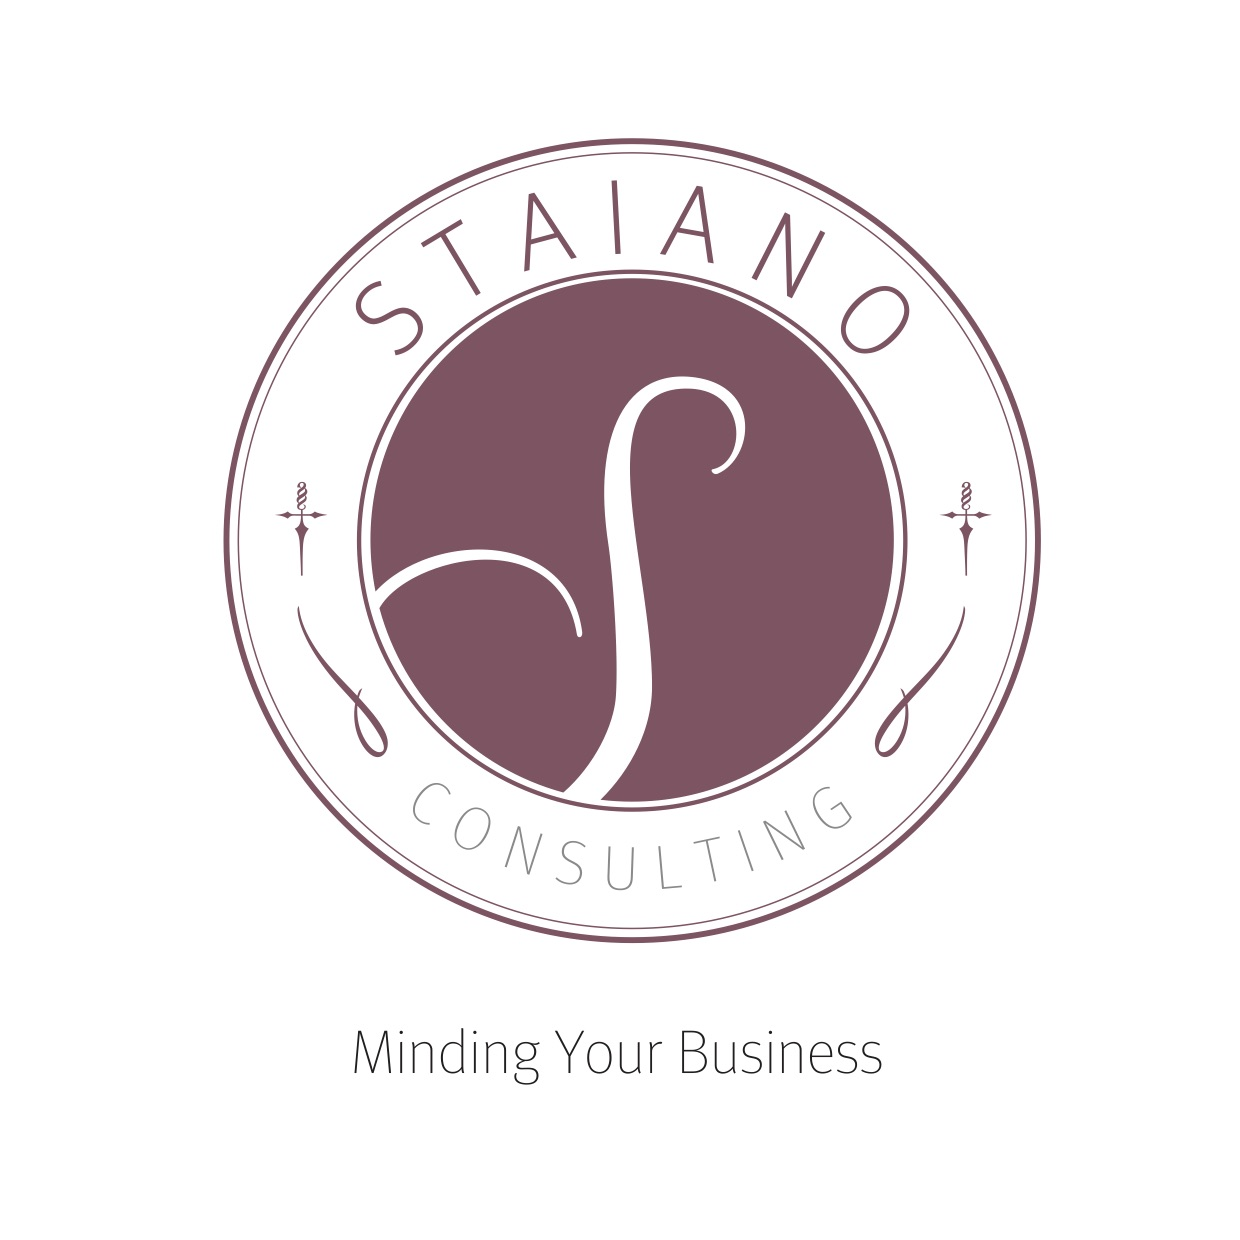 Staiano Consulting